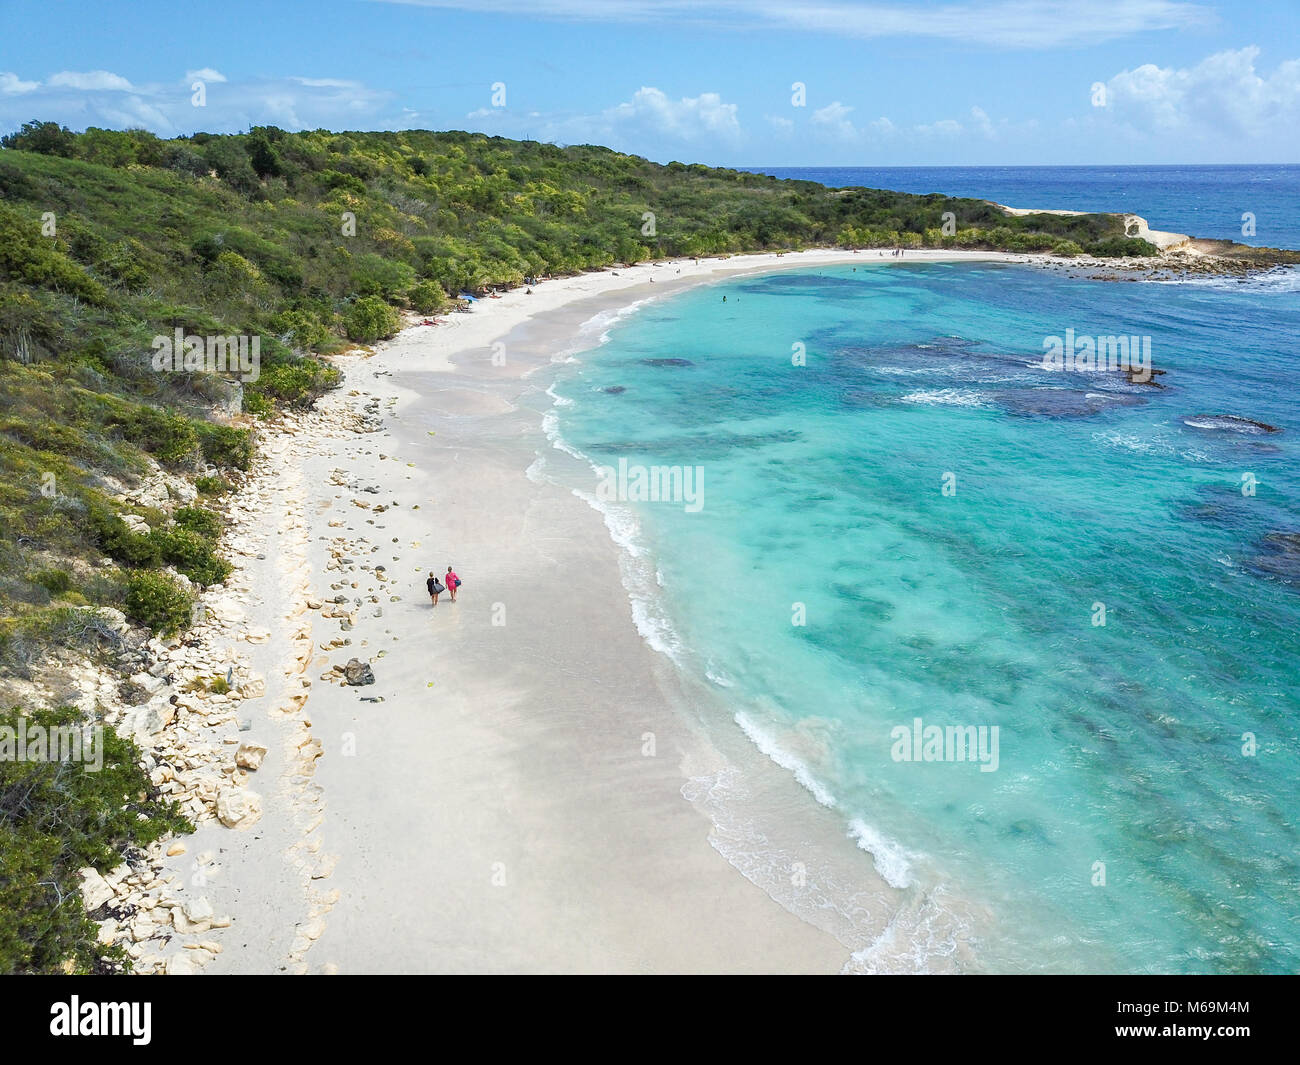 Half Moon Bay Beach, Antigua - Stock Image